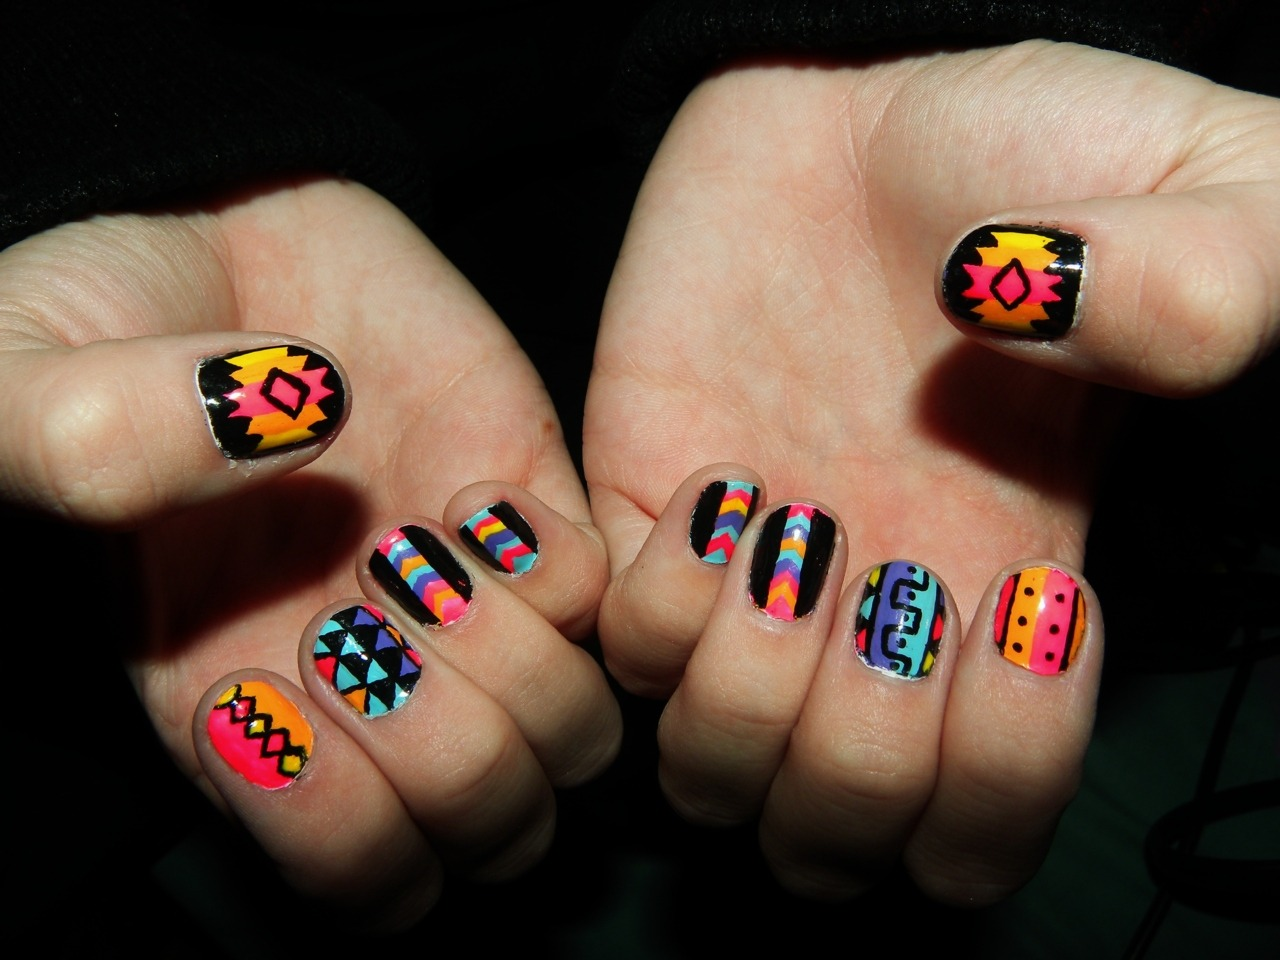 h0000t:  newest nails <3  Supa Nails inspired